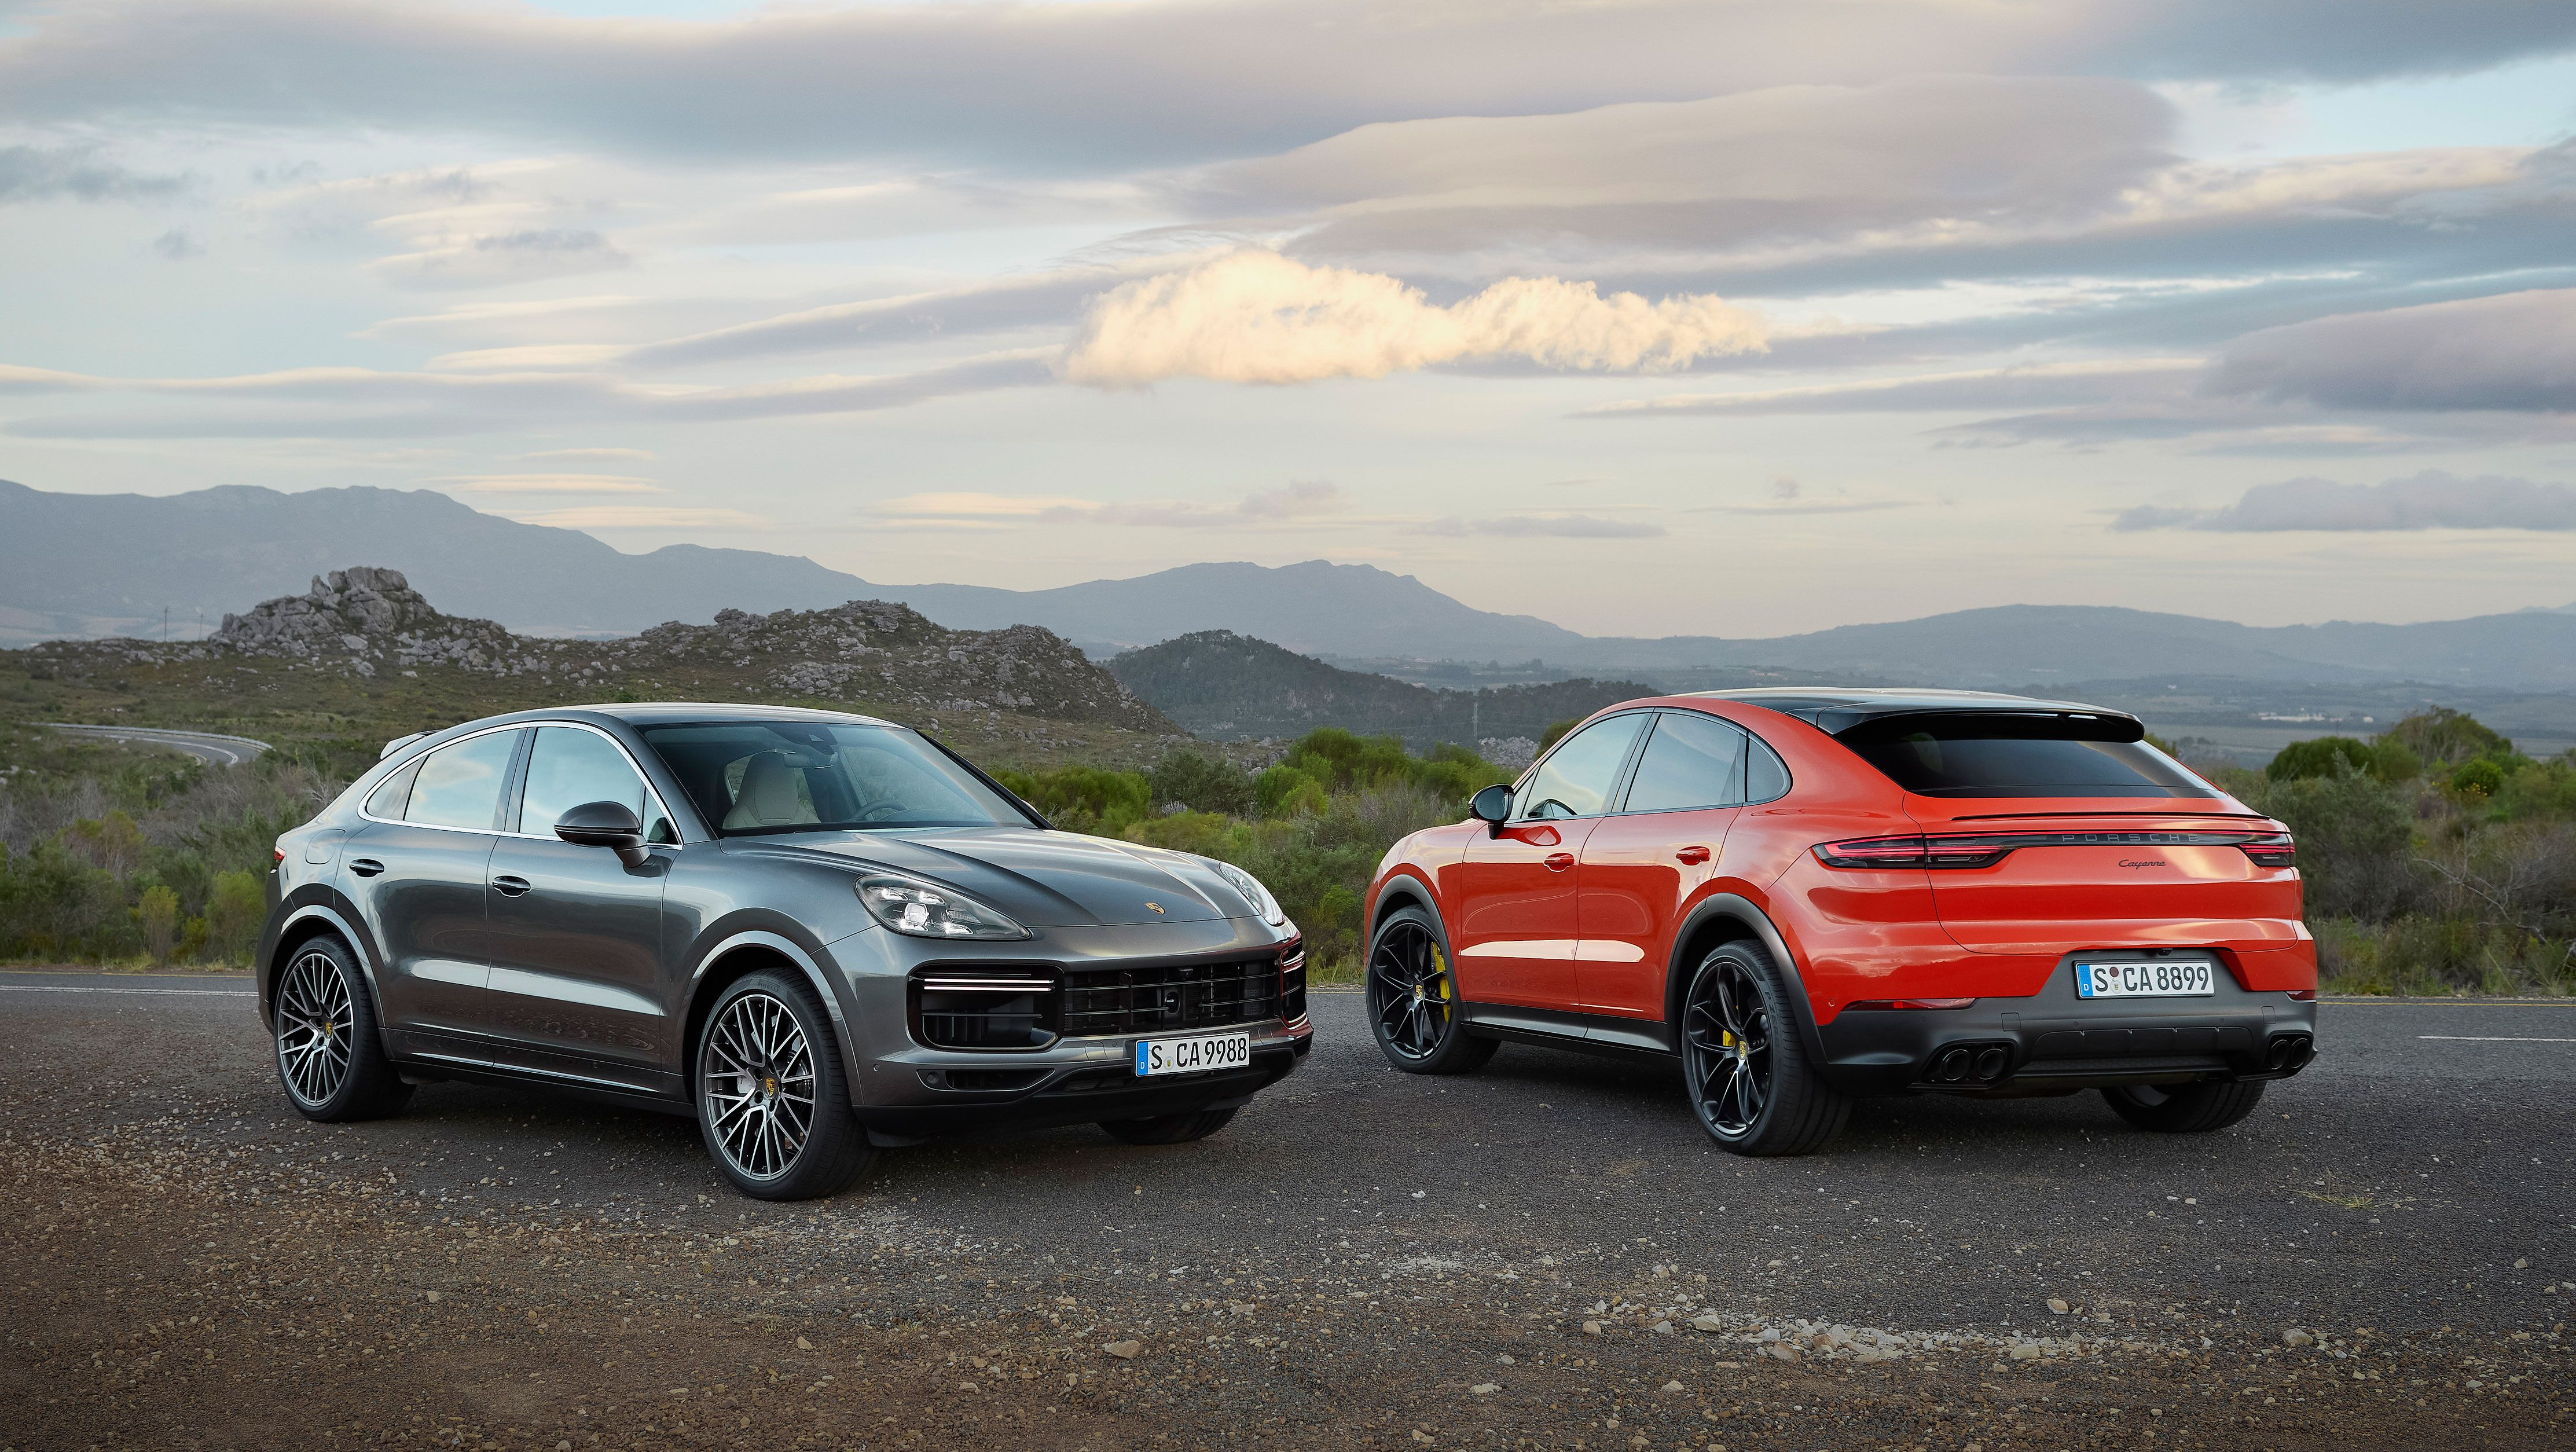 Wallpaper Of The Day 2020 Porsche Cayenne Coupe Top Speed Porsche Cayenne Porsche Porsche Suv